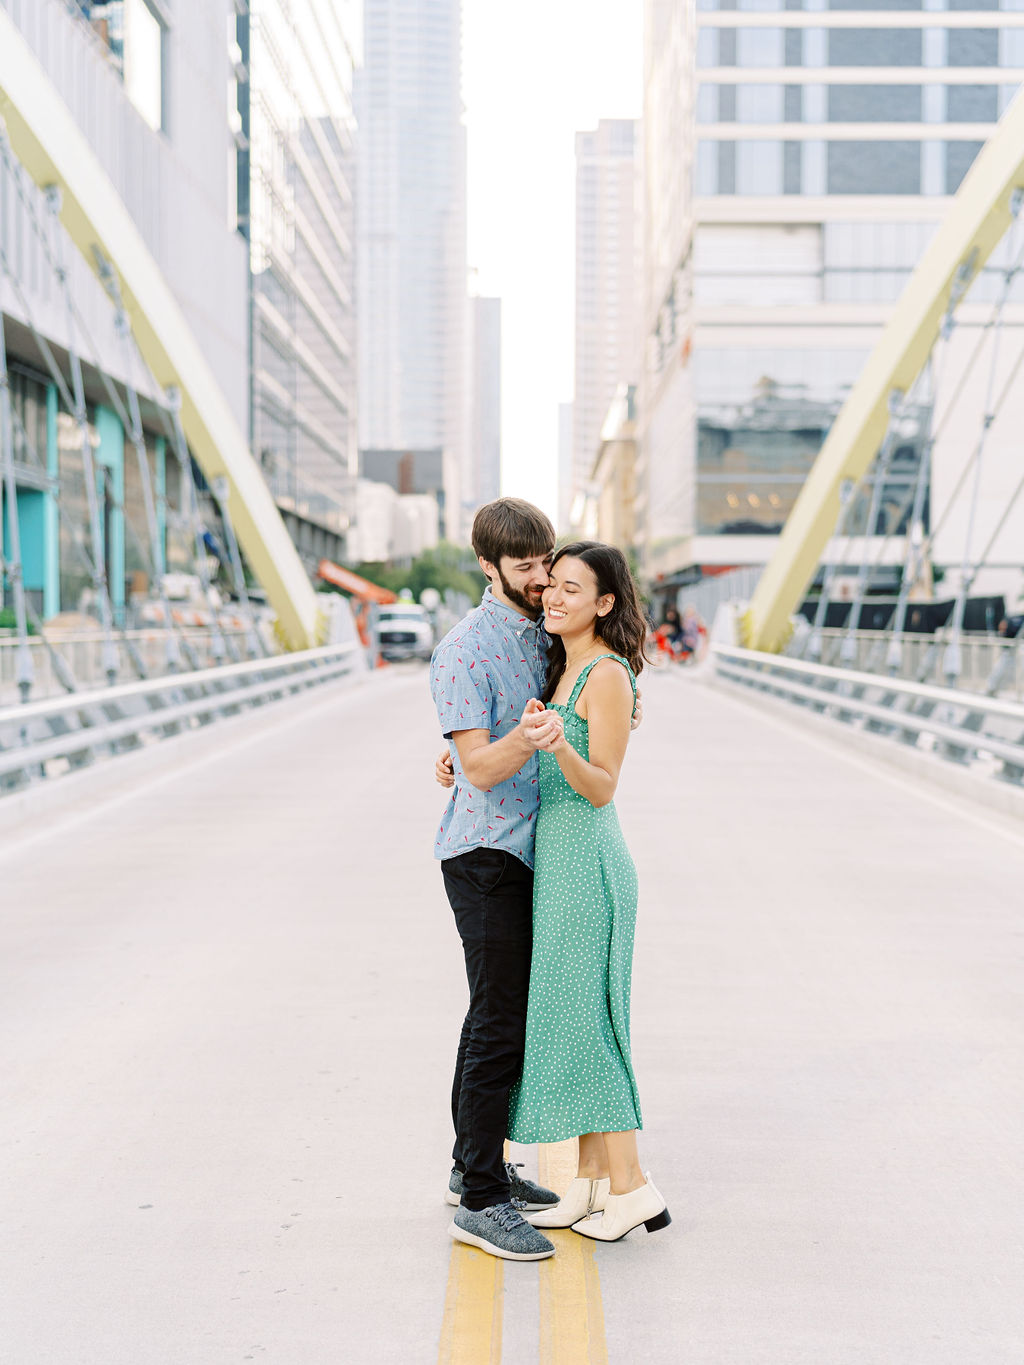 Austin-Intimate-Wedding-Elopement-Photograper-Film-Downtown-Engagement-Session-Home-14.jpg